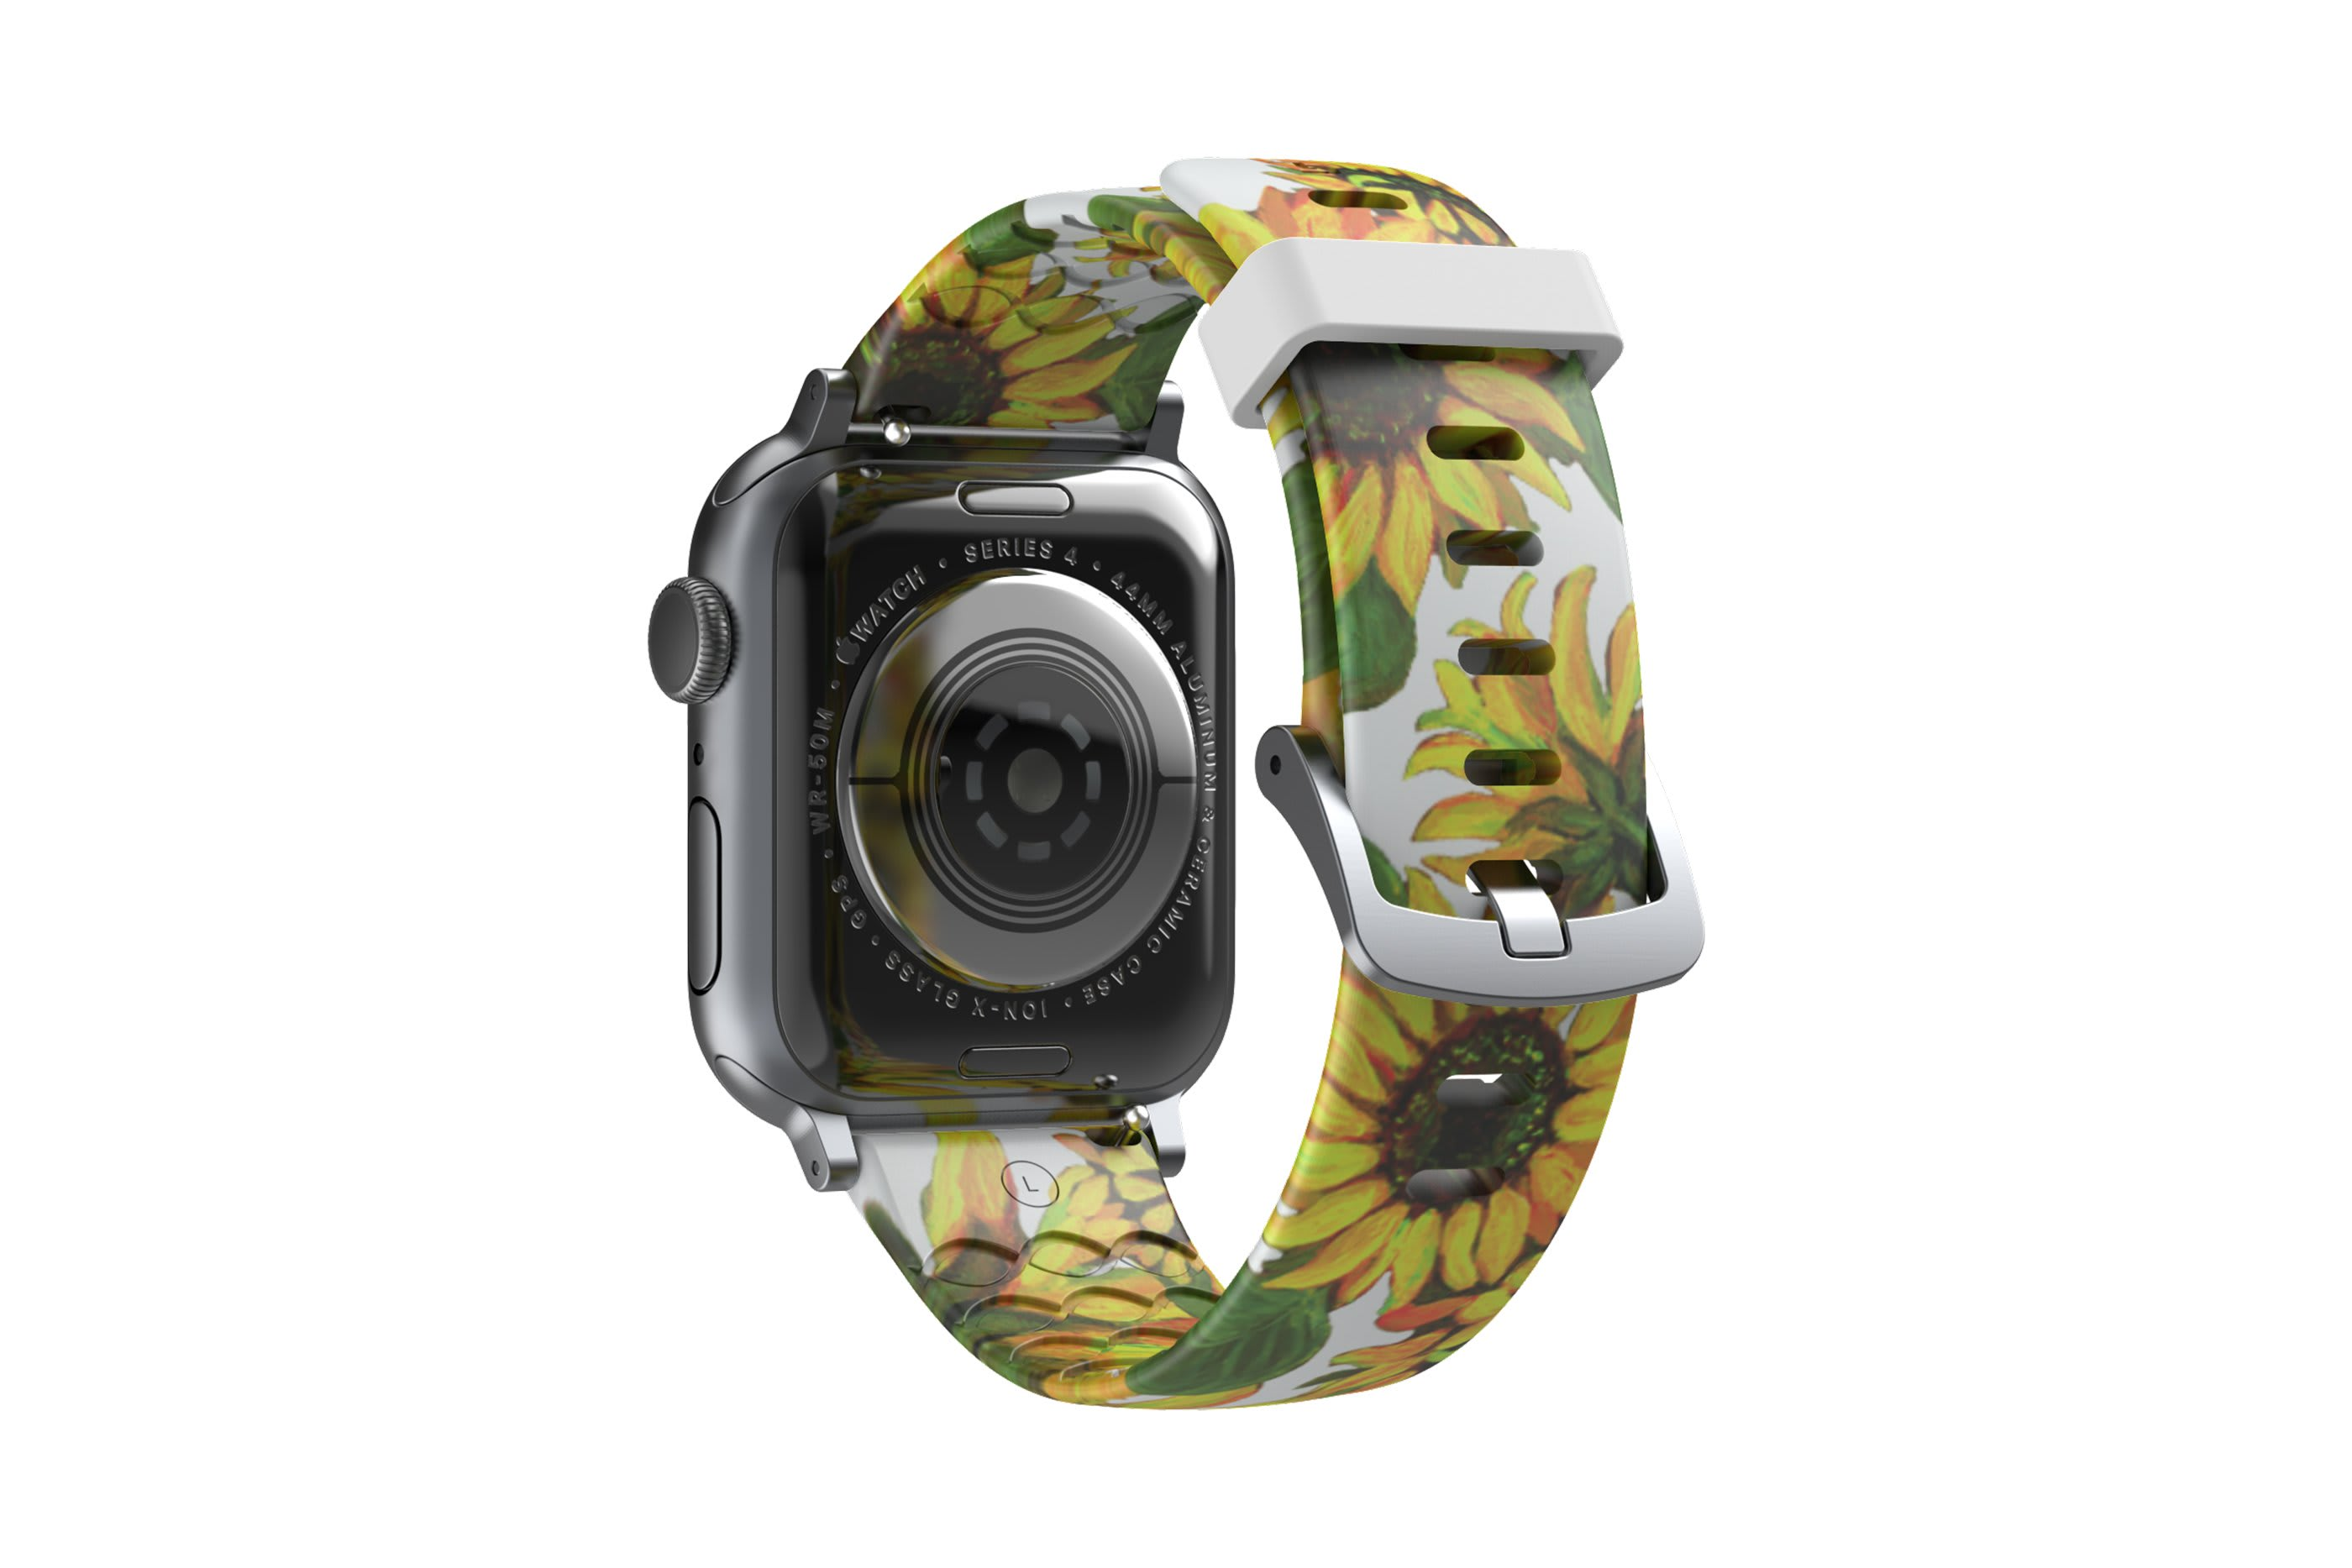 Sunflower Apple Watch Band with silver hardware viewed from top down